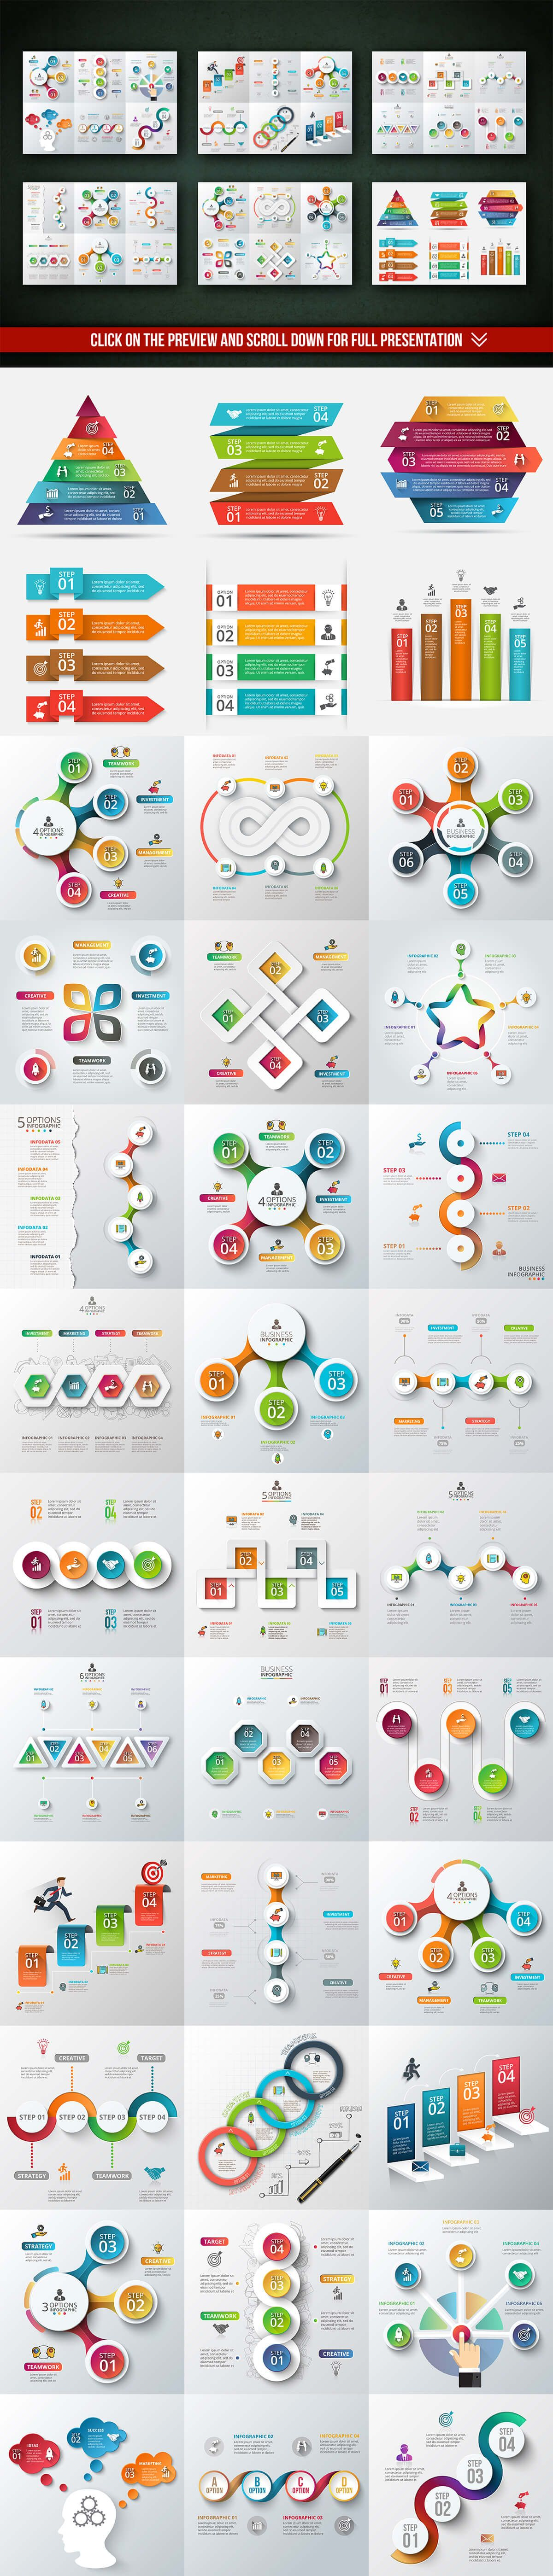 best infographic template bundles | blogging and content marketing, Powerpoint templates